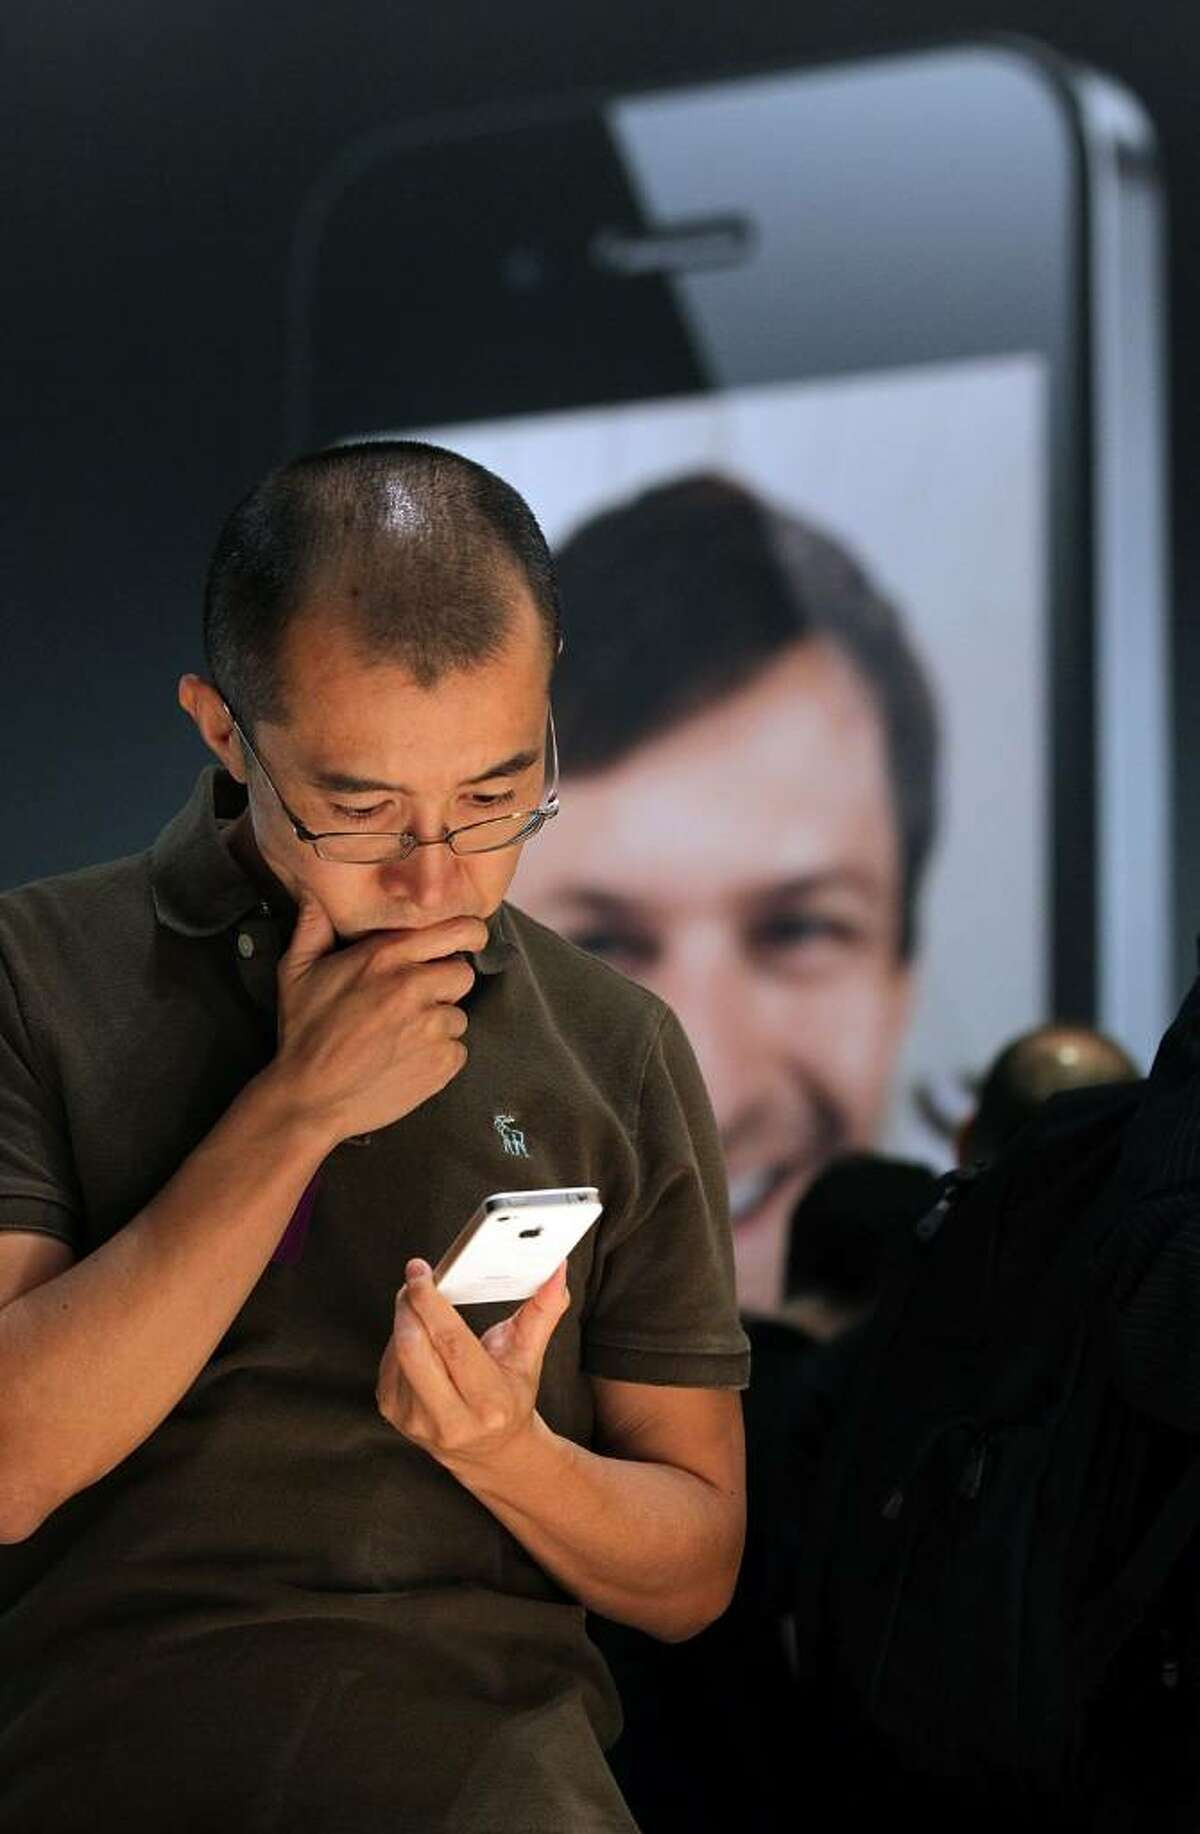 SAN FRANCISCO - JUNE 07: A member of the media inspects the new iPhone 4 at the 2010 Apple World Wide Developers conference June 7, 2010 in San Francisco, California. Apple CEO Steve Jobs kicked off their annual WWDC with the announcement of the new iPhone 4. (Photo by Justin Sullivan/Getty Images)